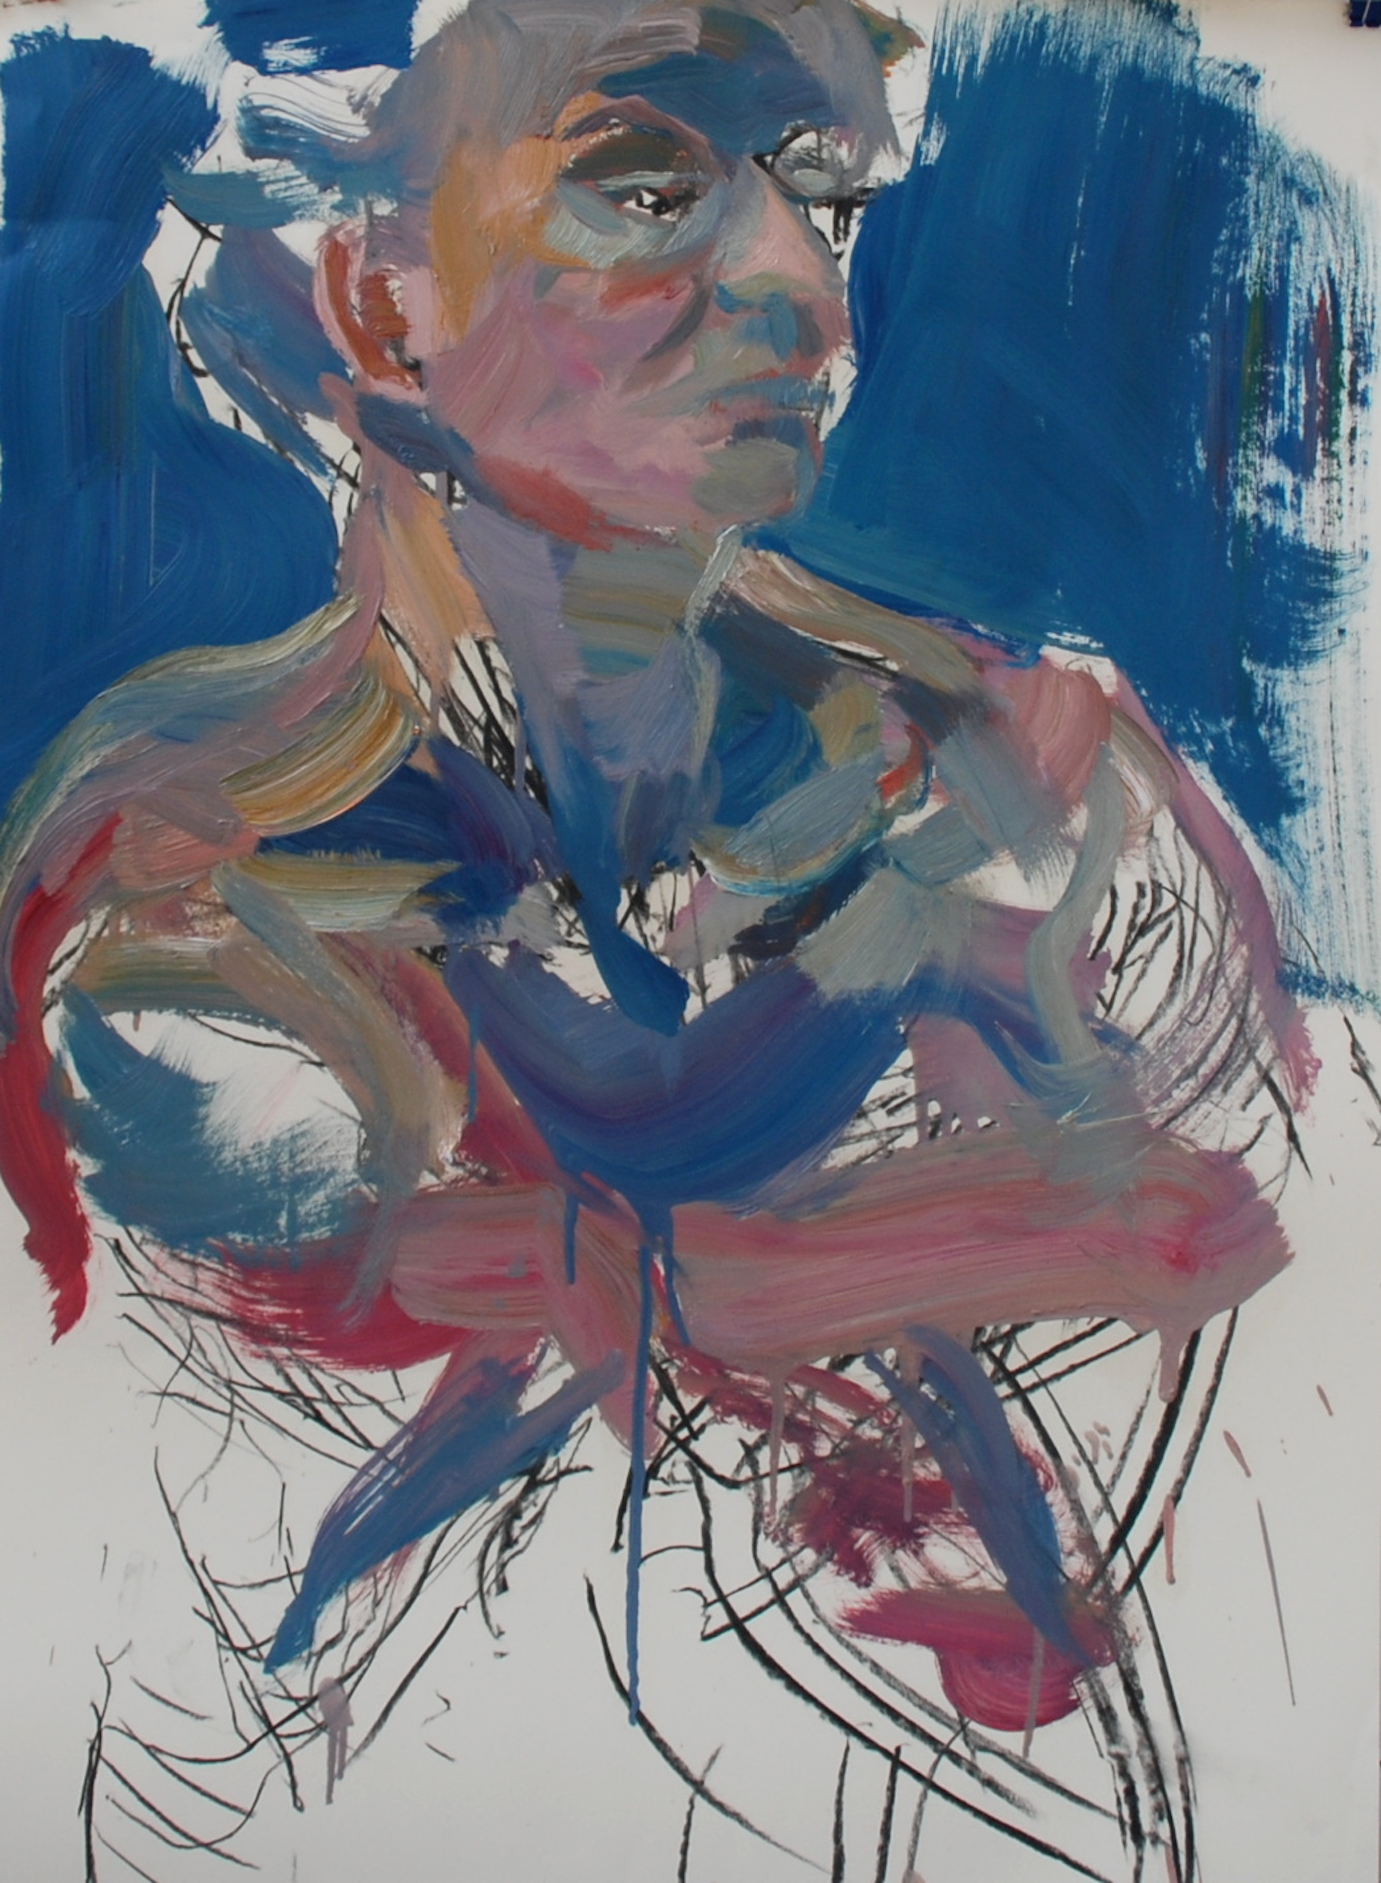 Elina Aho, From Series In-Between, 2012, charcoal, oil on paper, 84 x 59 cm.png